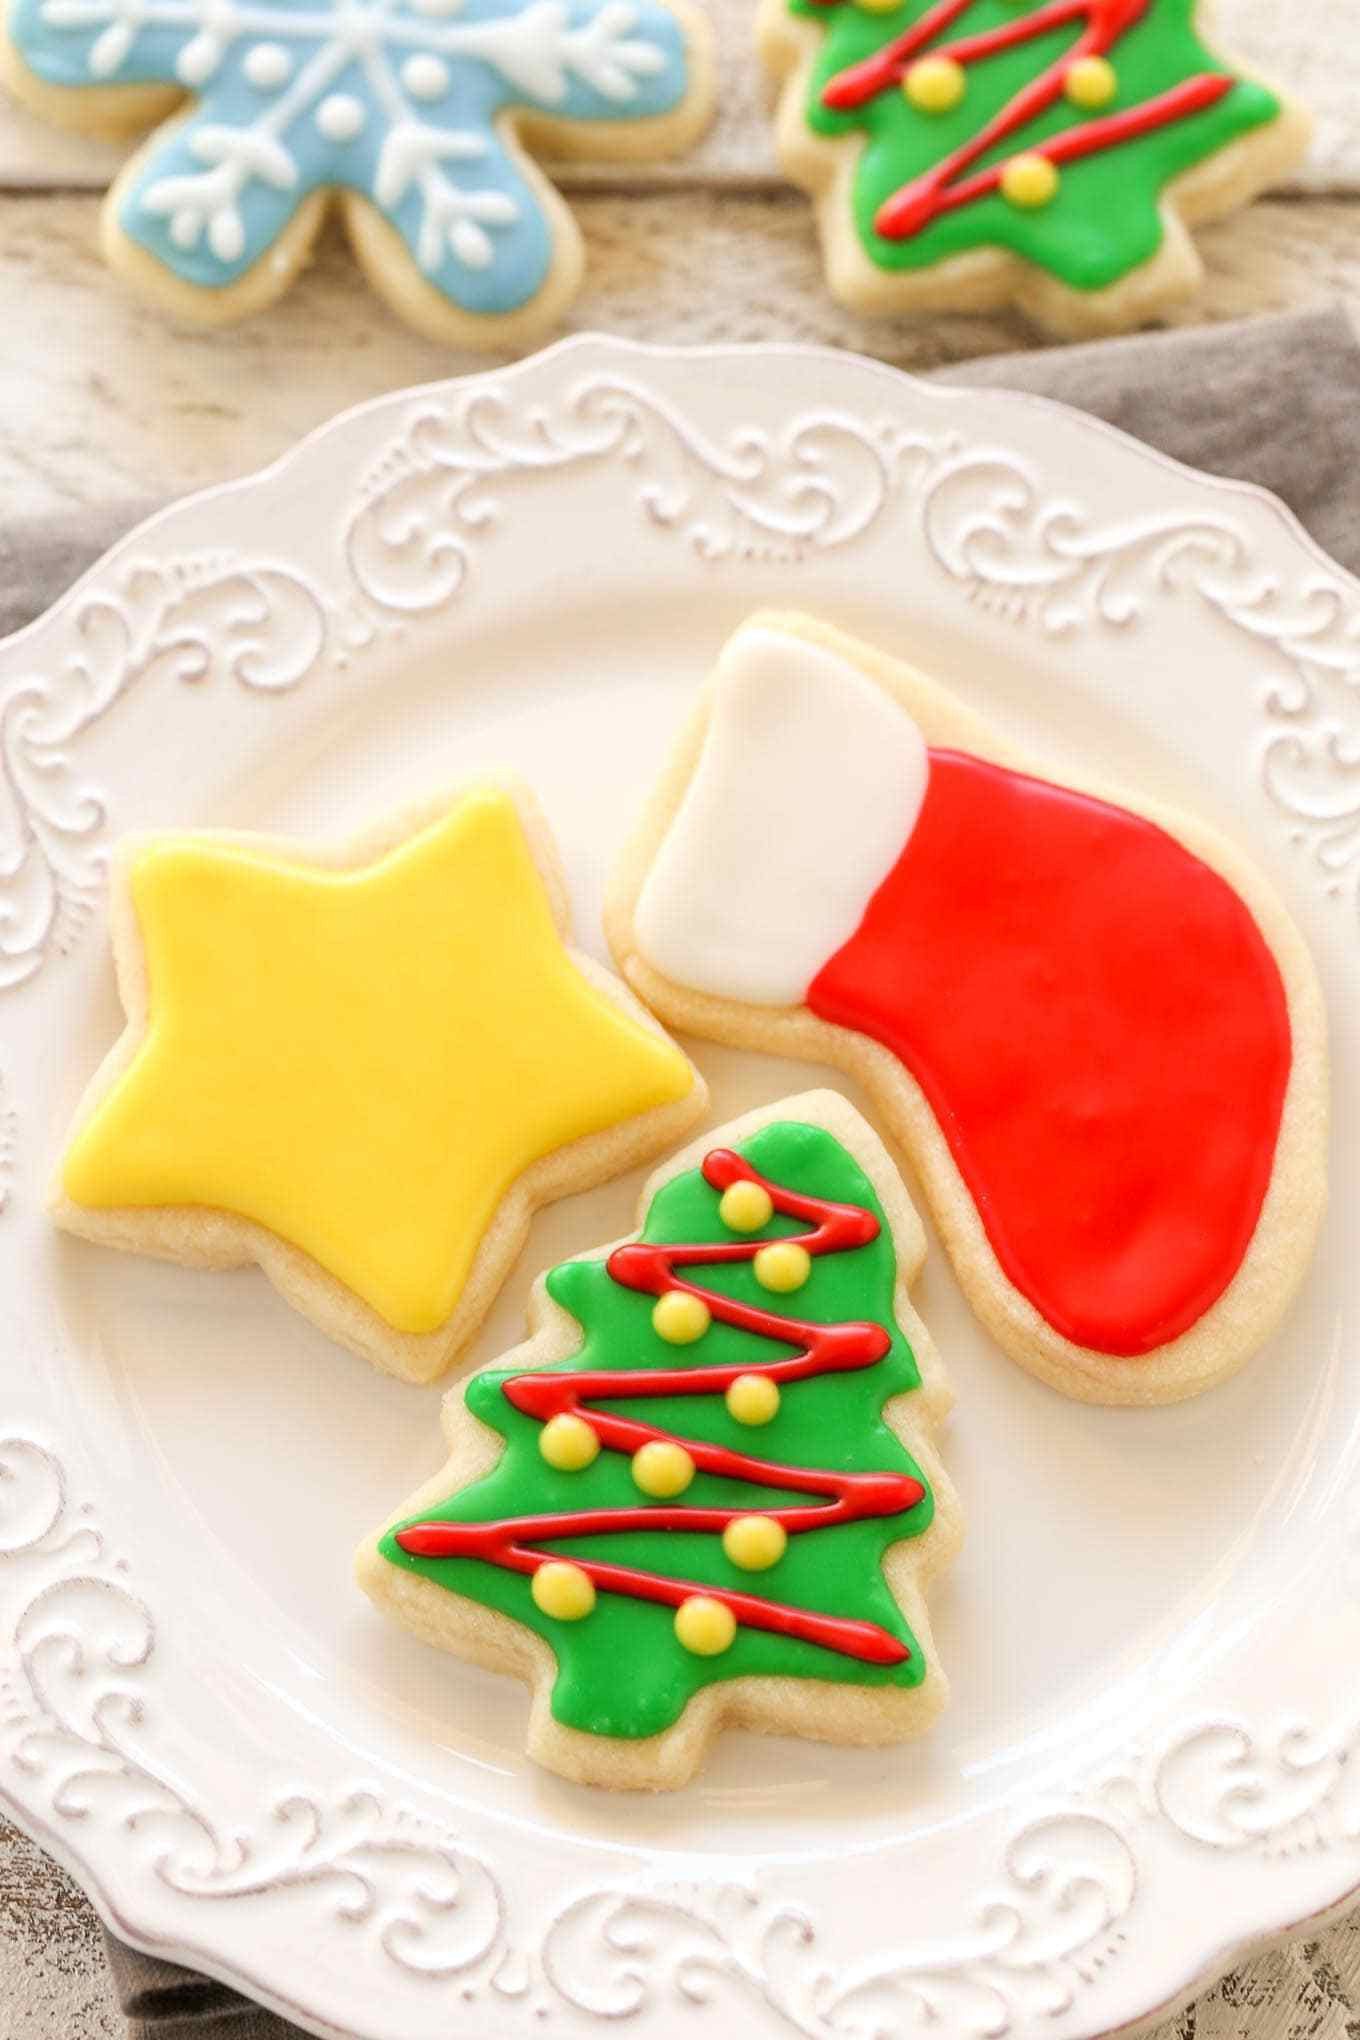 Christmas Sugar Cookie Icing Recipes  Soft Christmas Cut Out Sugar Cookies Live Well Bake ten